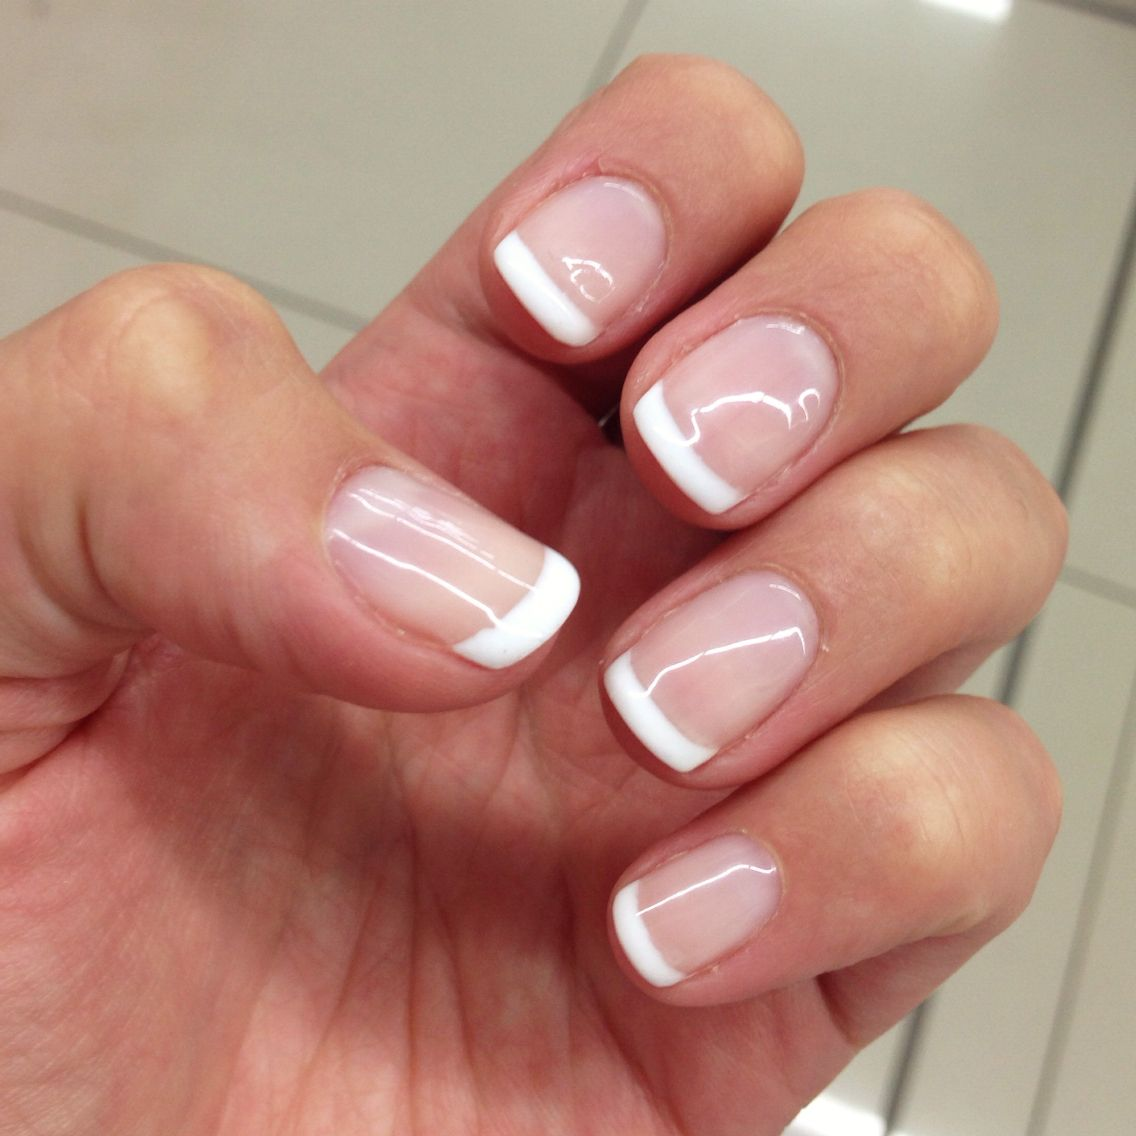 Nice and clean french gel overlay | Nails | Pinterest | Gel overlay ...